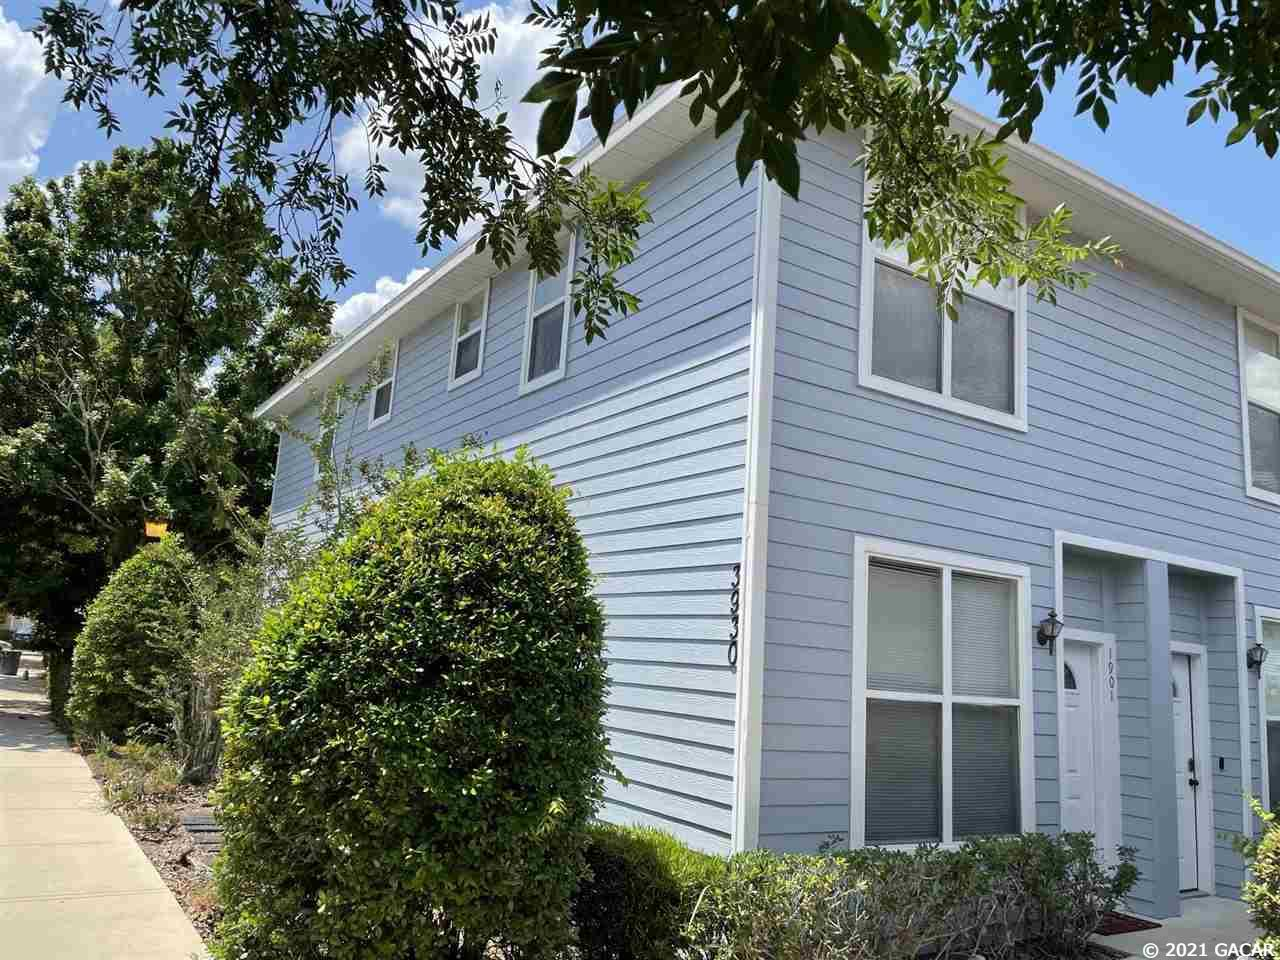 3930 SW 20th Avenue 1901, Gainesville, Florida 32607, 2 Bedrooms Bedrooms, ,3 BathroomsBathrooms,Townhouse,For Sale,3930 SW 20th Avenue 1901,444150